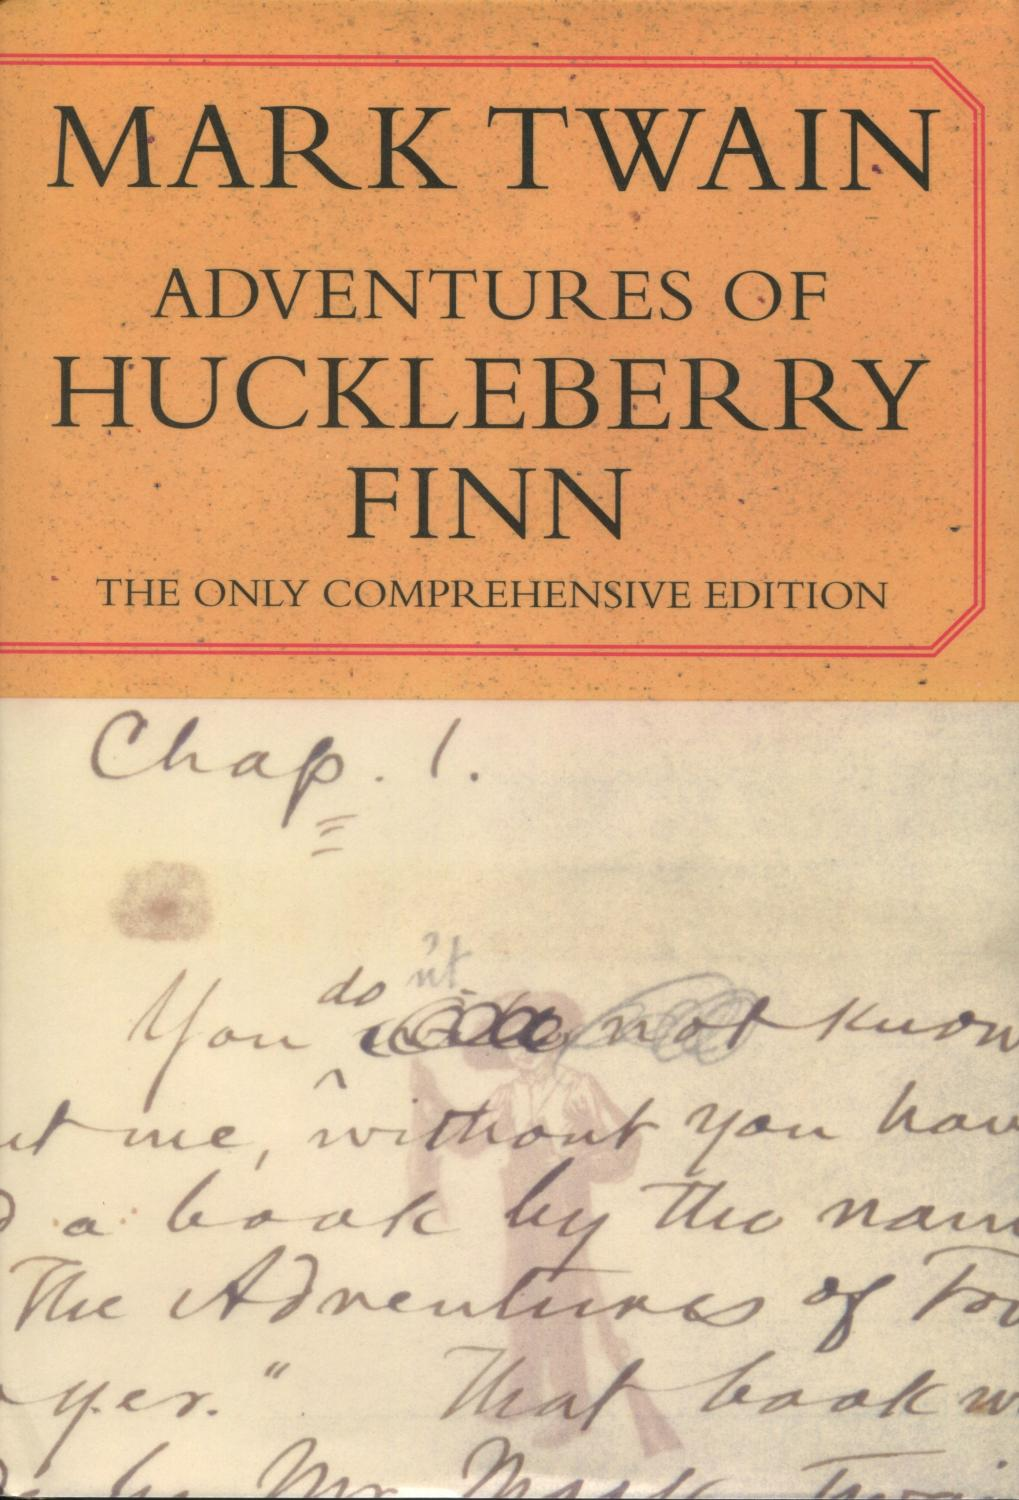 pap the father of huck in the novel the adventures of huckleberry finn by mark twain Everything you ever wanted to know about pap in adventures of huckleberry  finn, written by masters of this stuff just for you  finn by mark twain  sure,  huck's father pap may be an ignorant, abusive, alcoholic racist who beats his son  and.